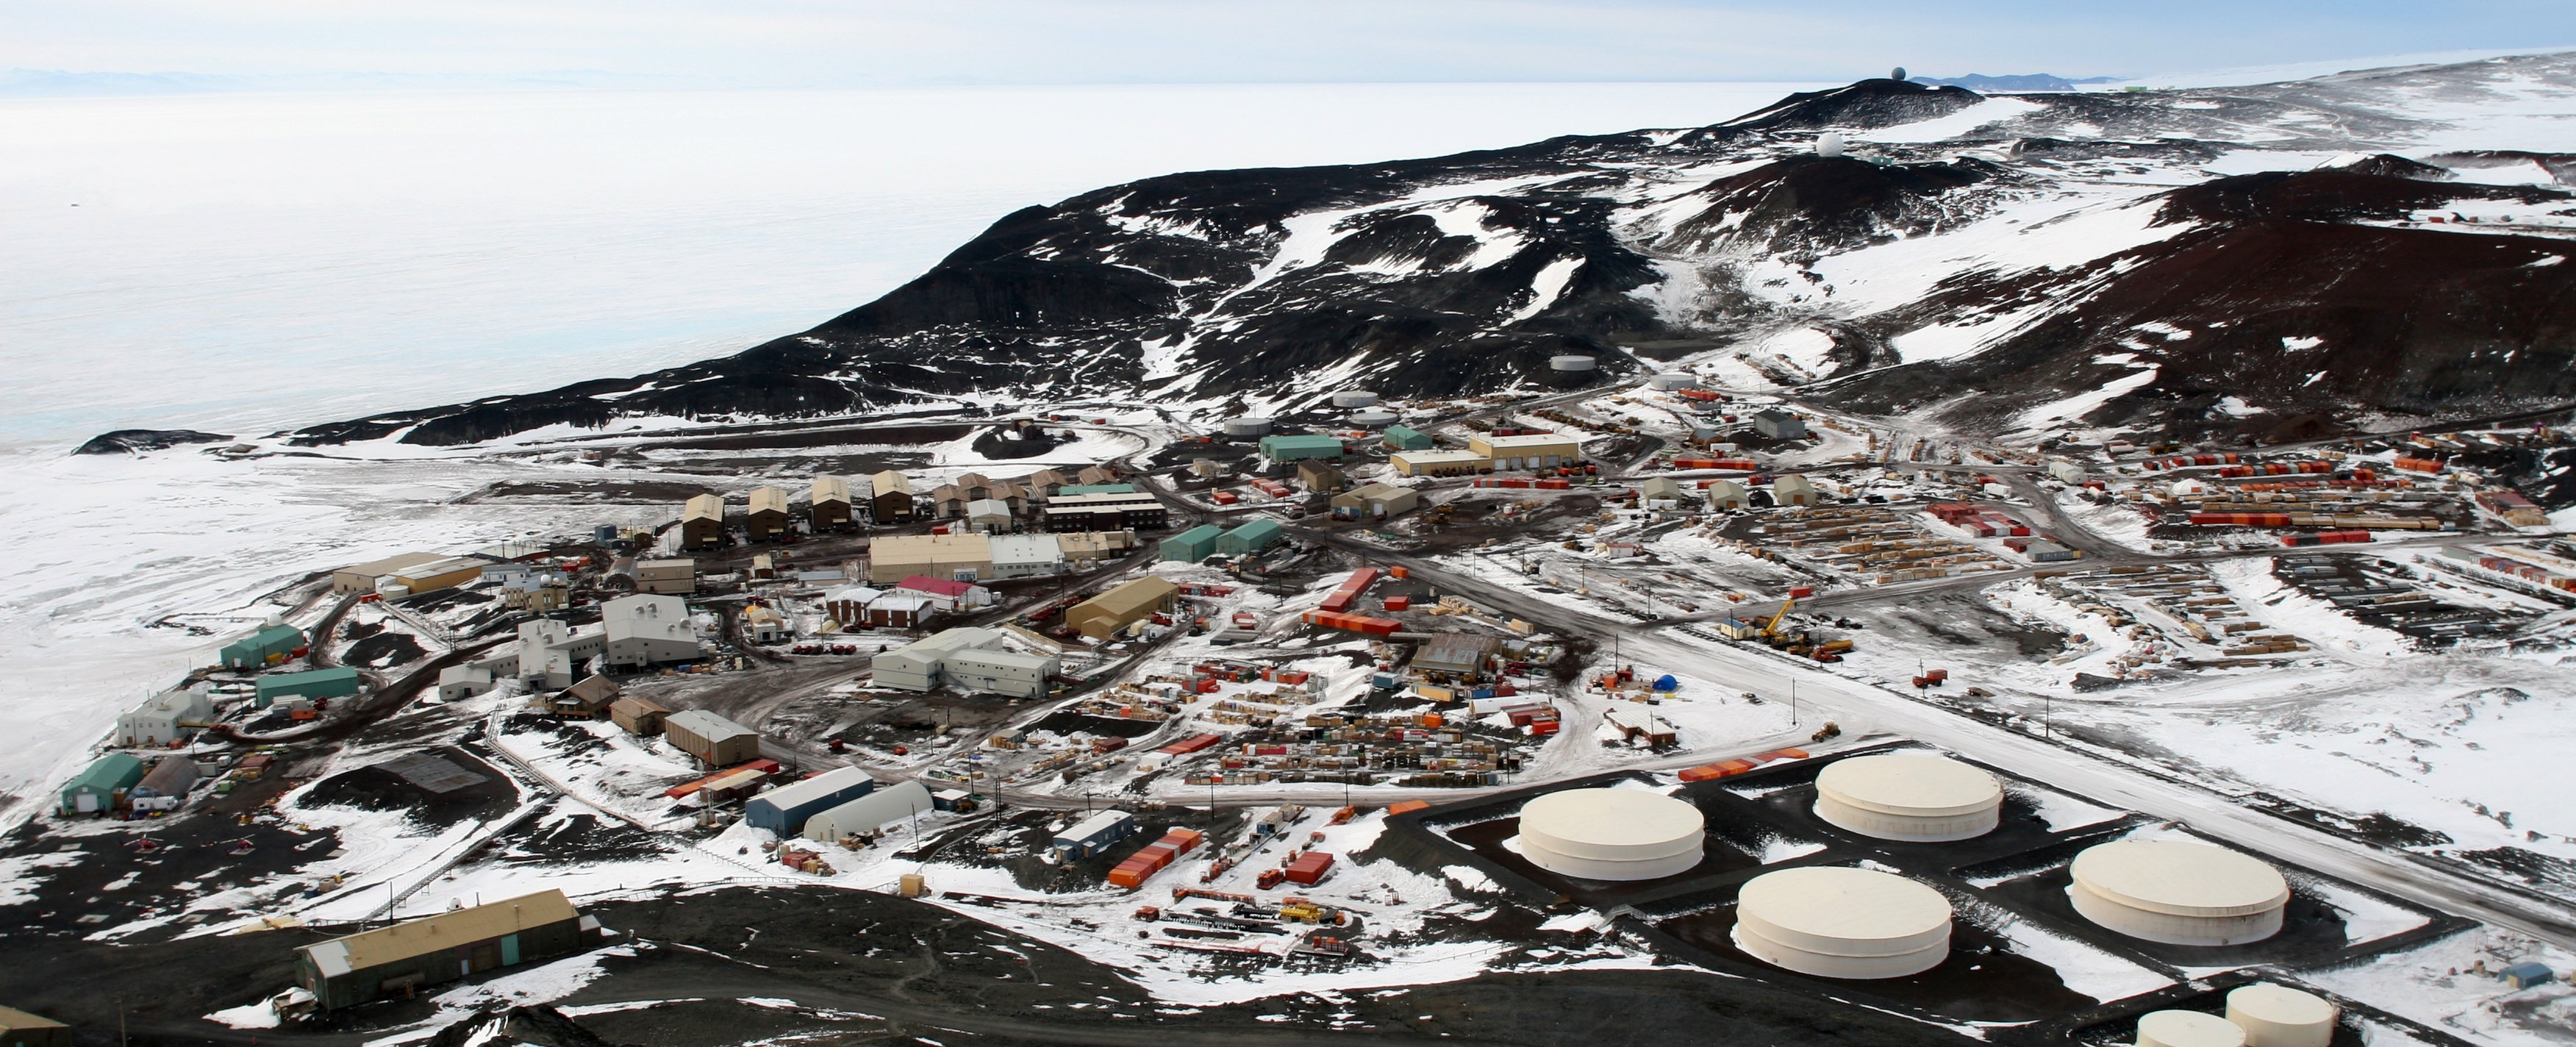 mcmurdo station black dating site As the cut tells us, an american scientist stationed at antarctica's mcmurdo station booted up tinder — that wonderfully sketchy dating app — just for funlo and behold, in one of the iciest.